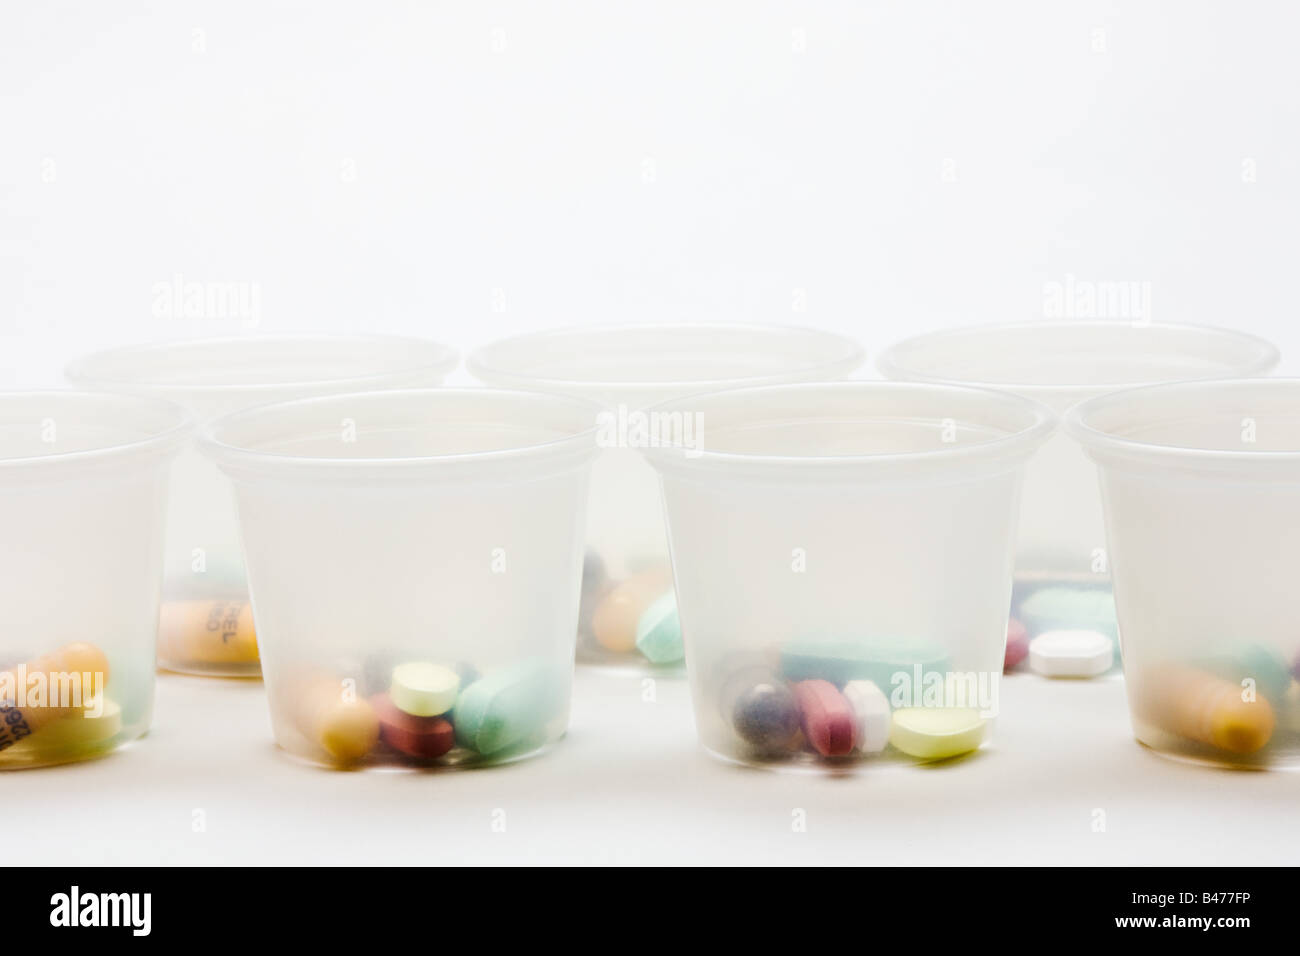 Tablets in containers - Stock Image